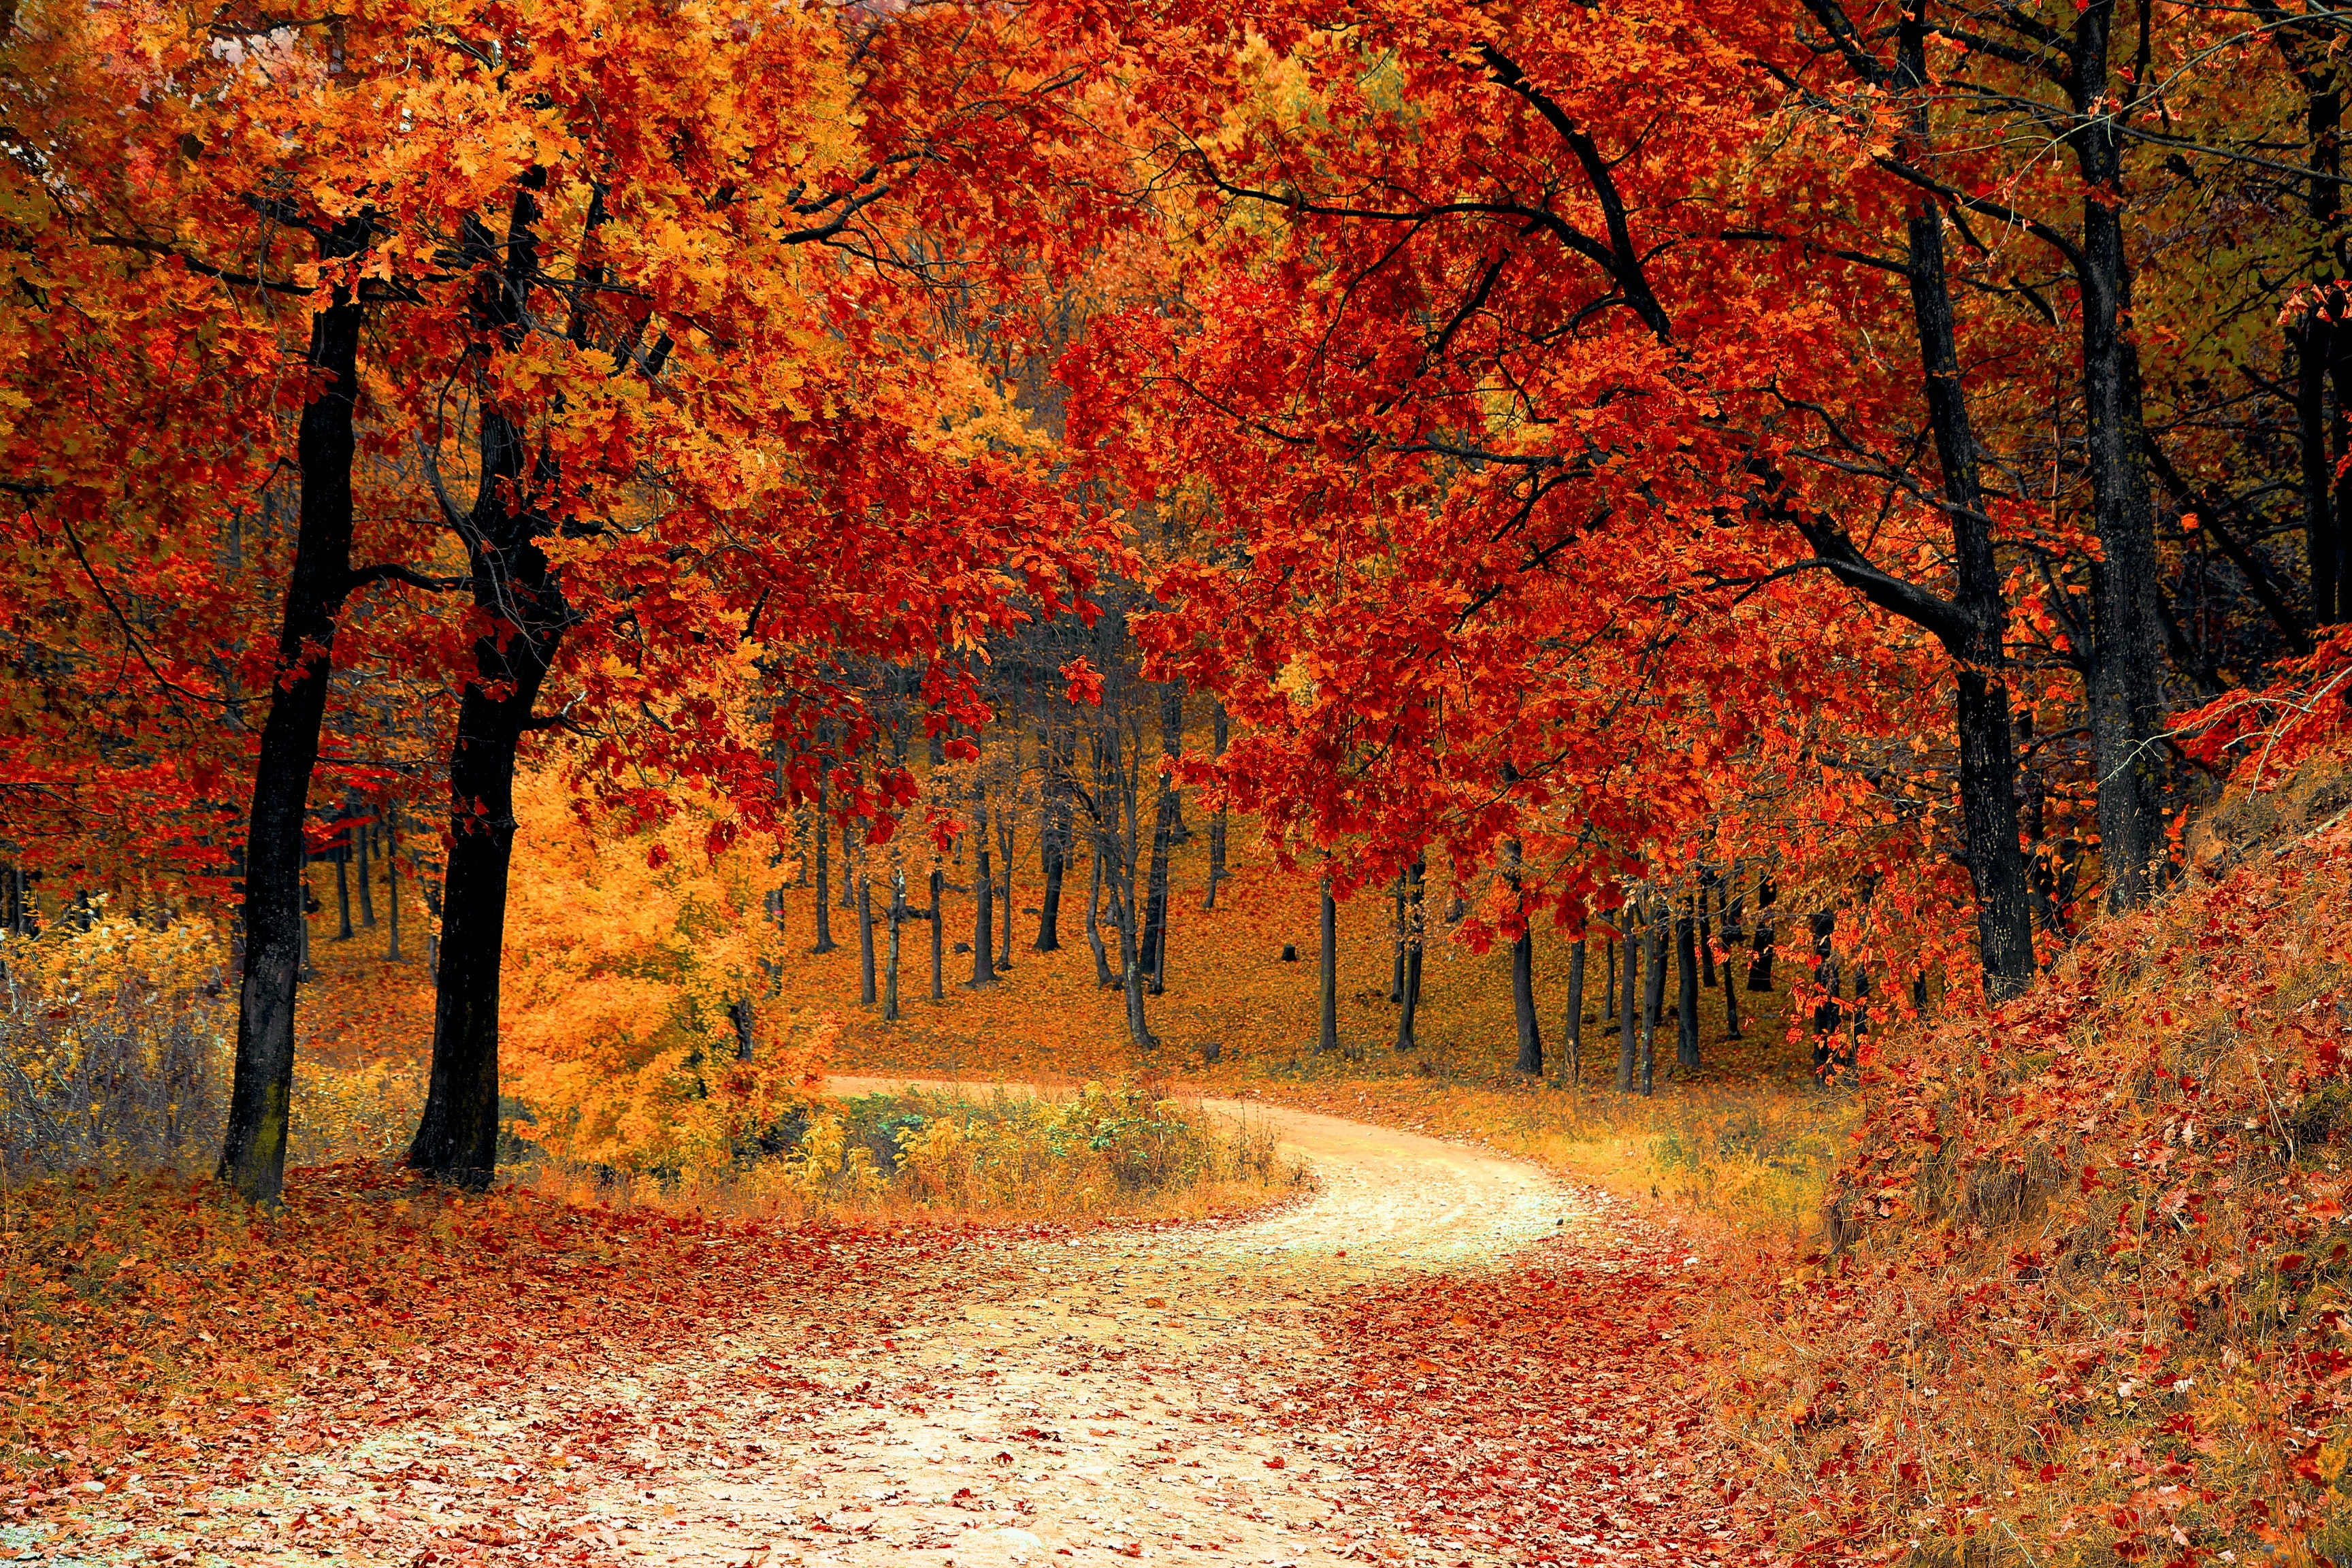 Red Leaf Trees Near the Road by Pixabay